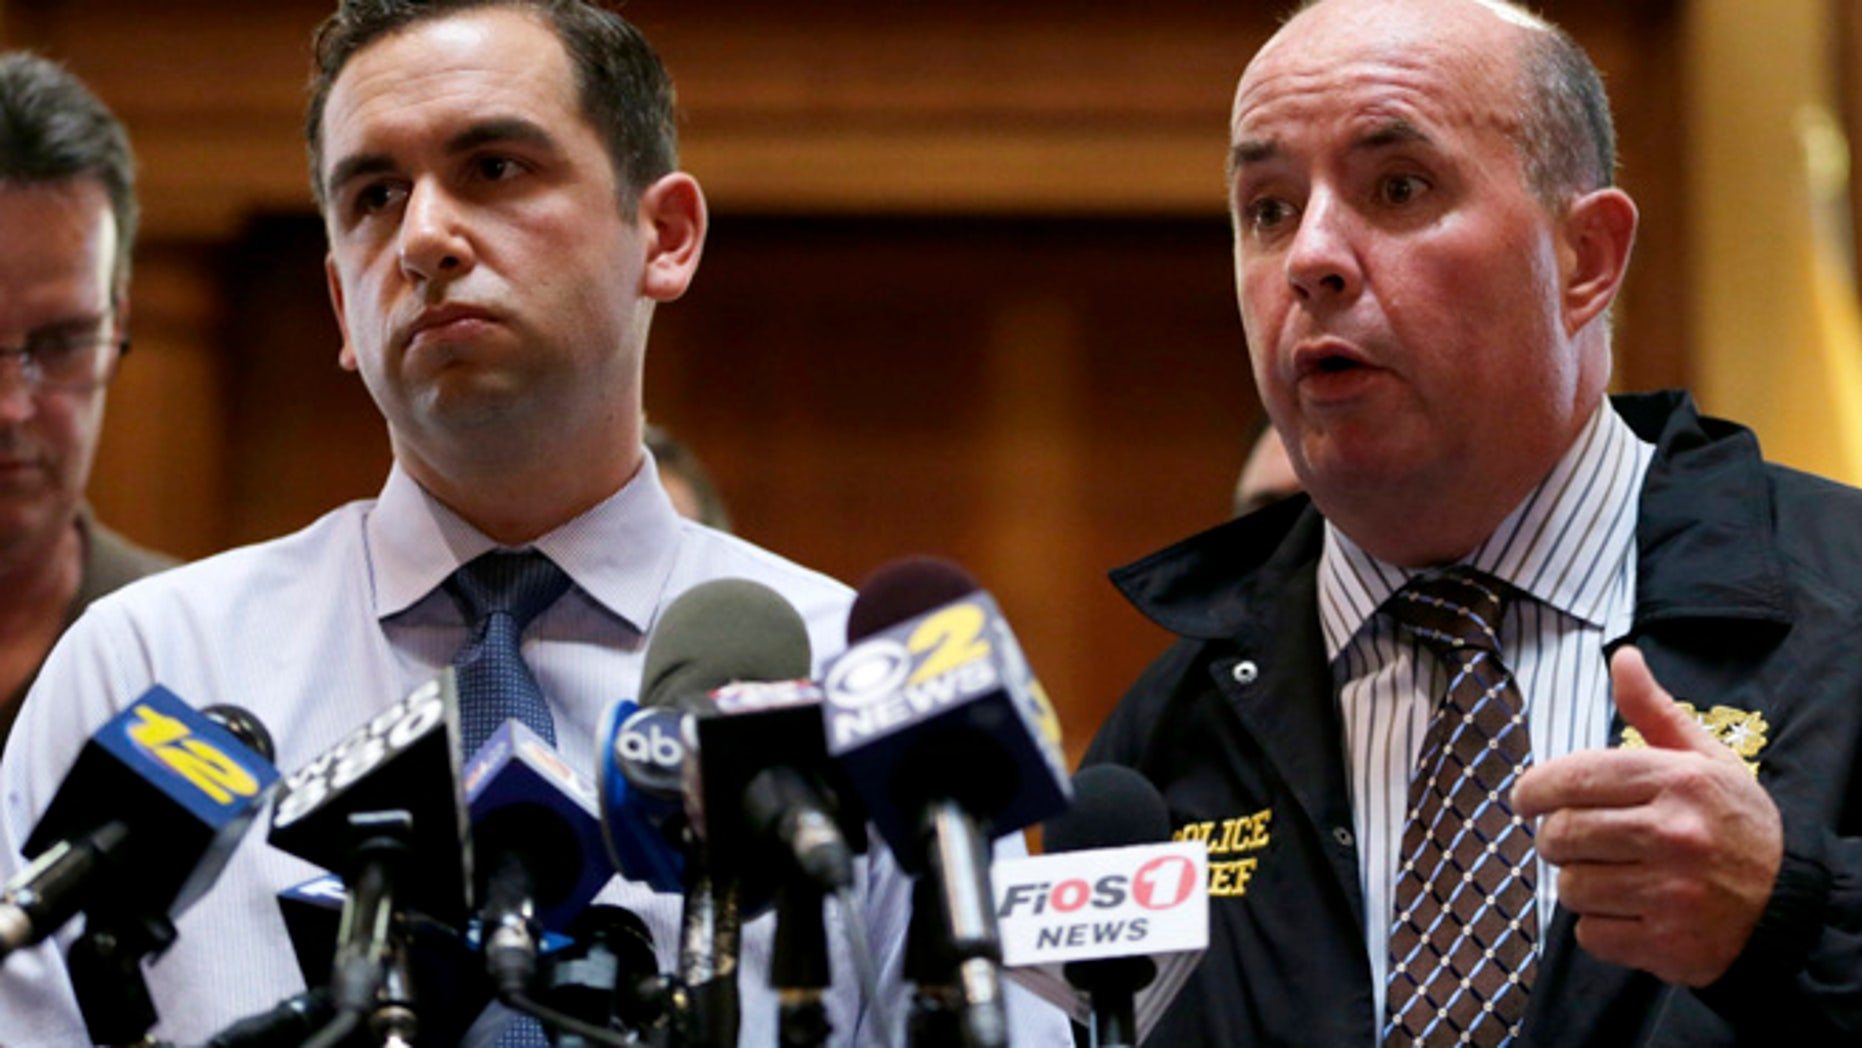 July 13, 2014: Jersey City Police Chief Robert Cowan, right, talks while standing next to Mayor Steven Fulop during a news conference talking about an early morning shooting which lead to the killings of a suspect and a Jersey City Police Department officer.